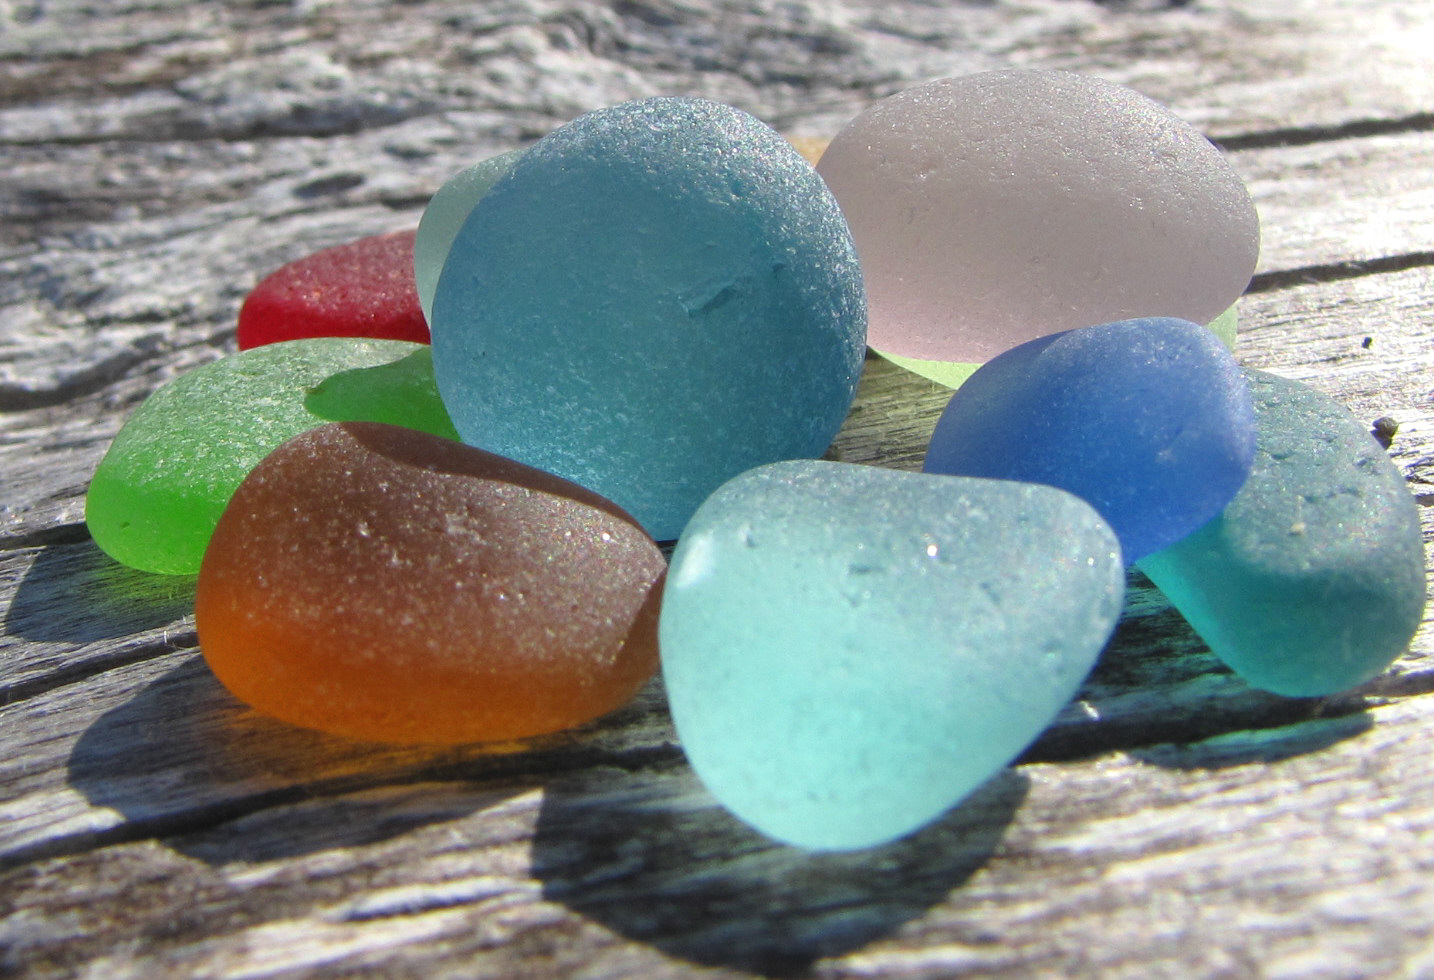 Glasbild Meer The Sea Glass Blog